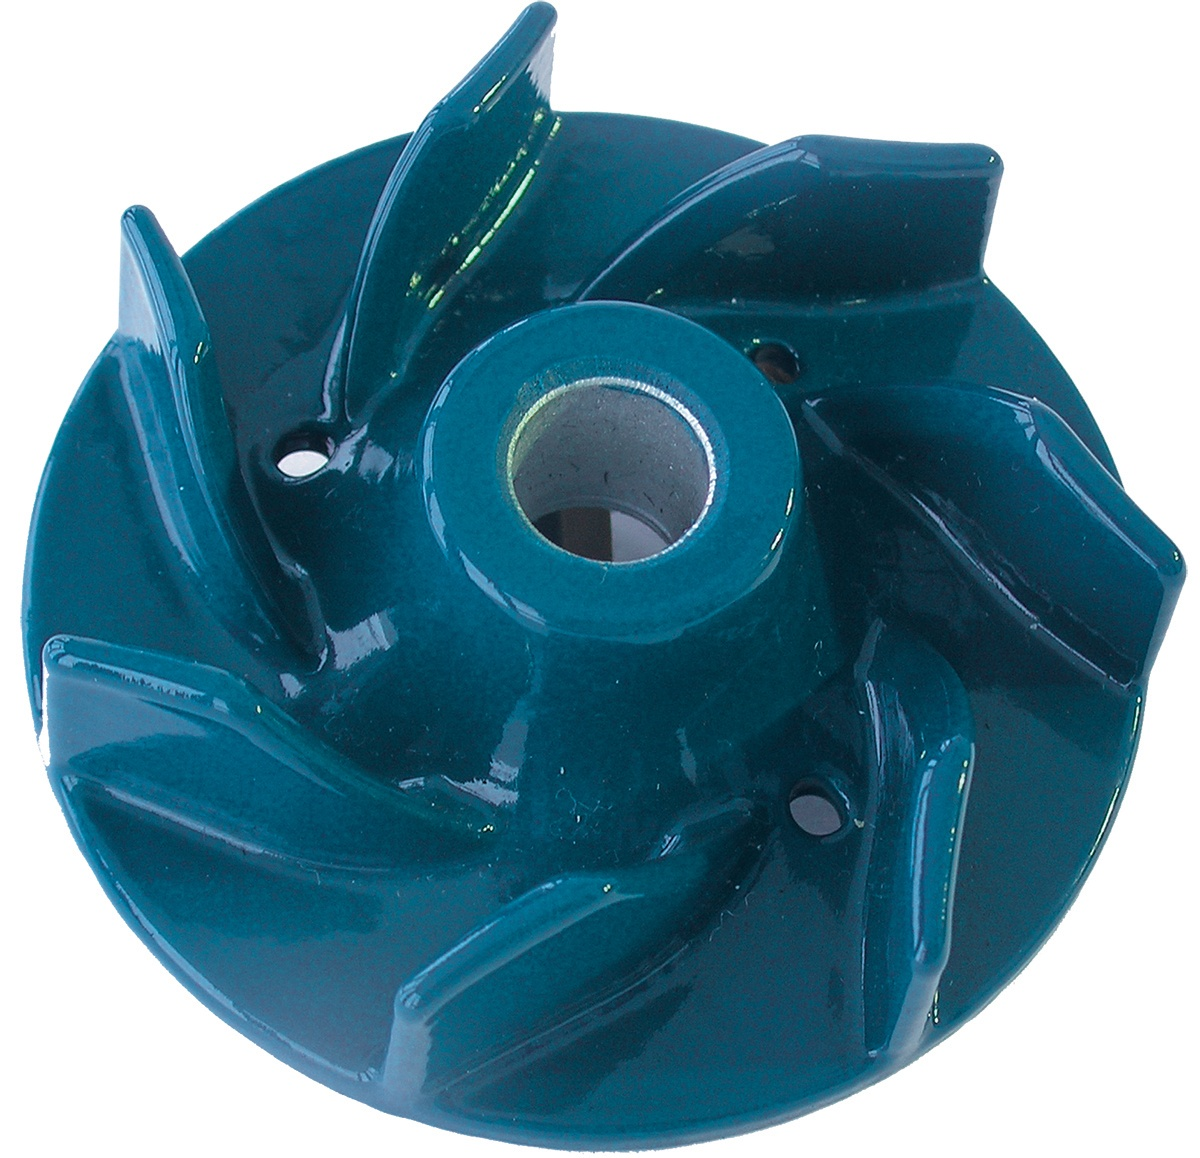 500-Pump_impeller_coating blue.jpg